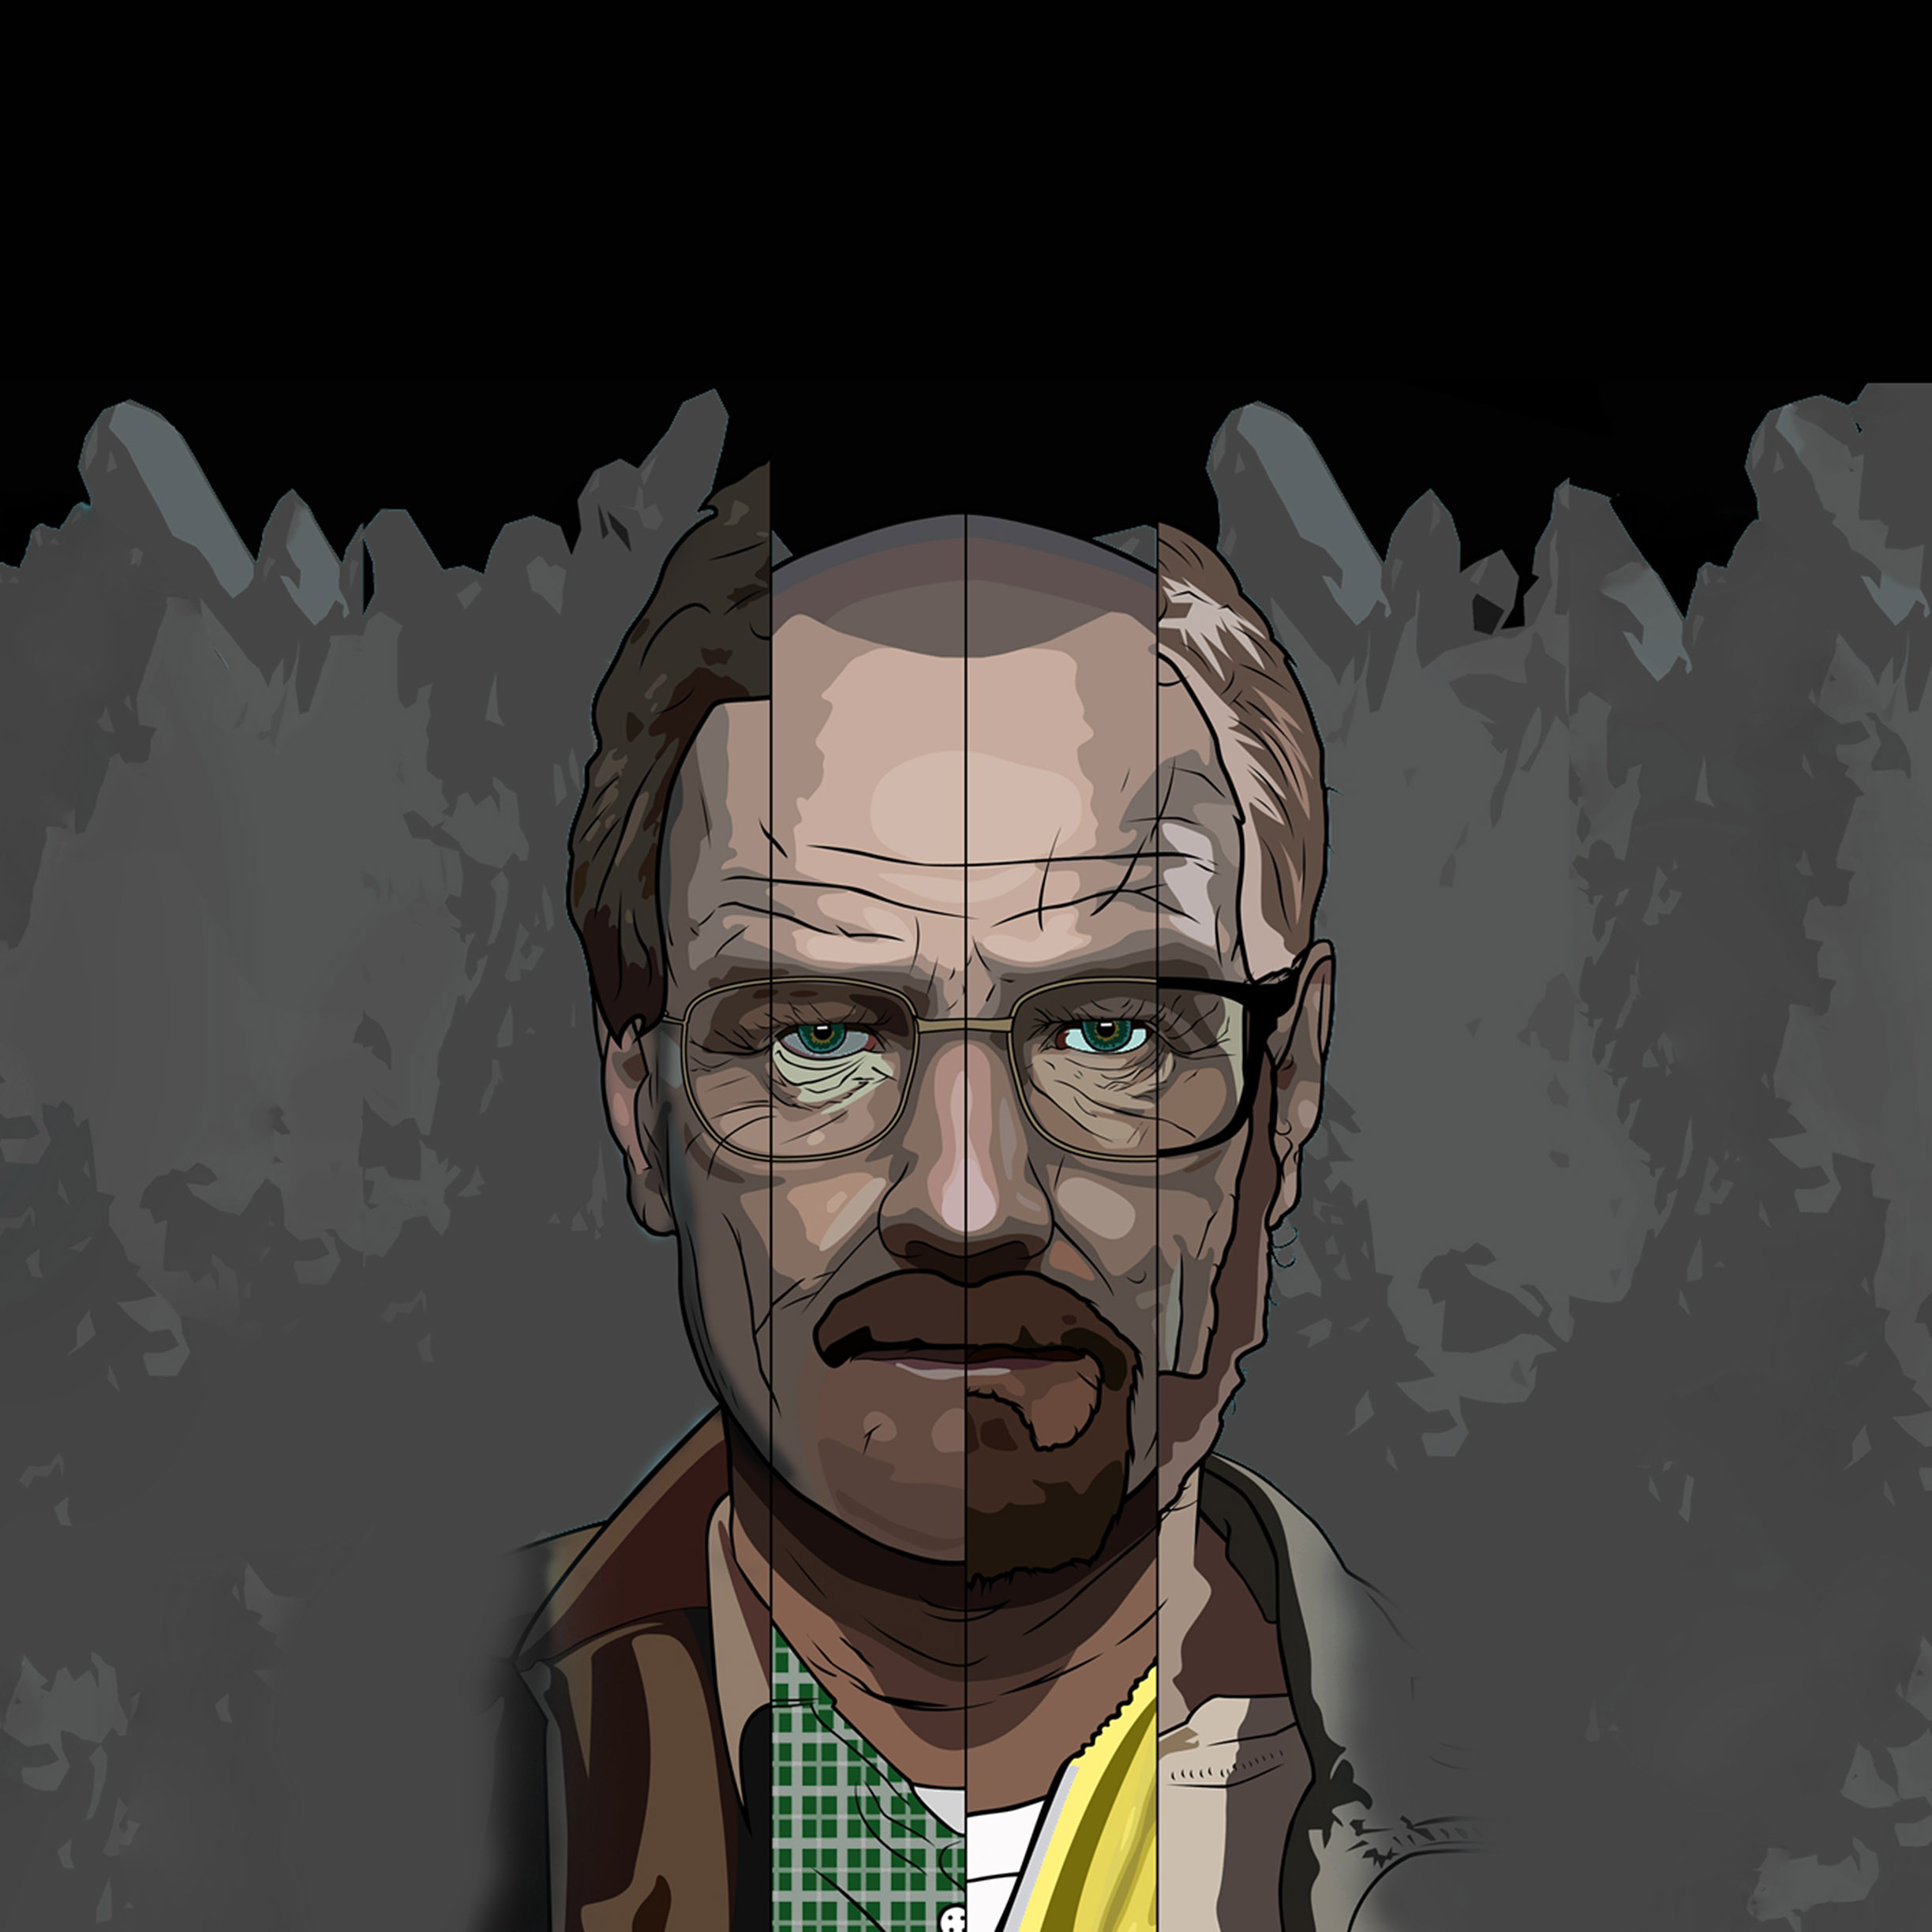 Walter White Iphone 5 Wallpaper Download Ipad Iphone 5 S C